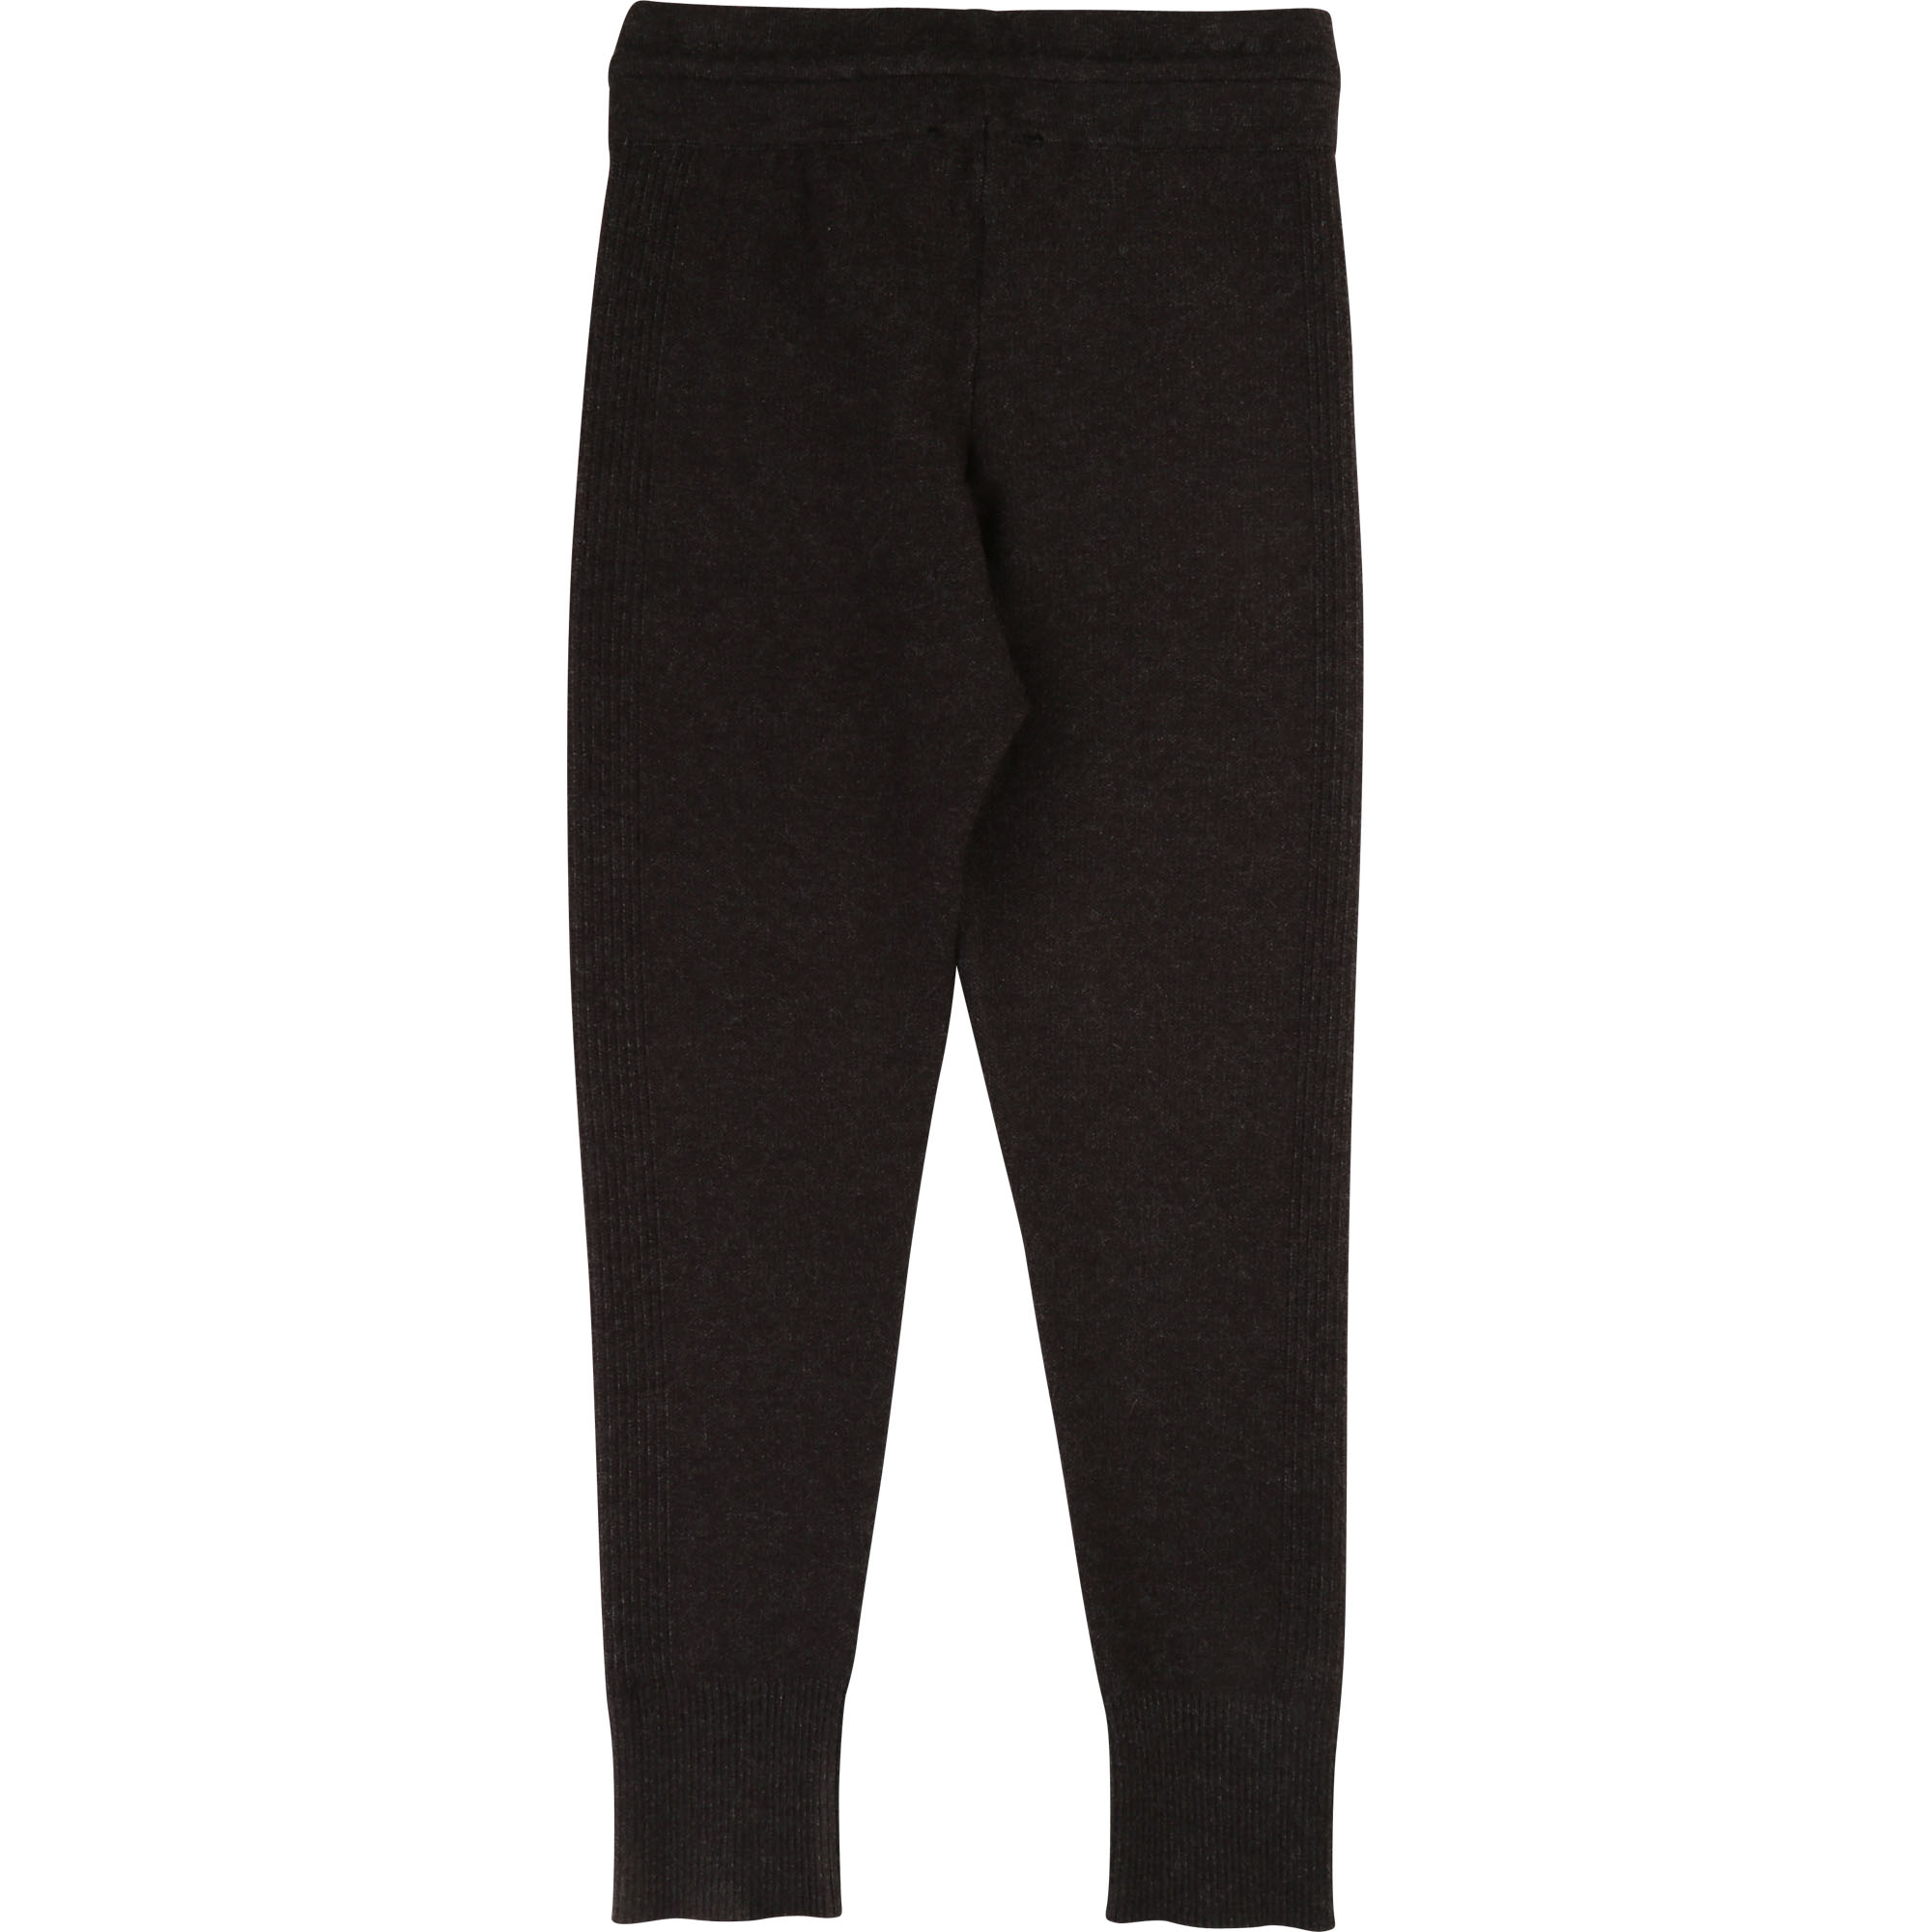 Novelty knit trousers DKNY for GIRL